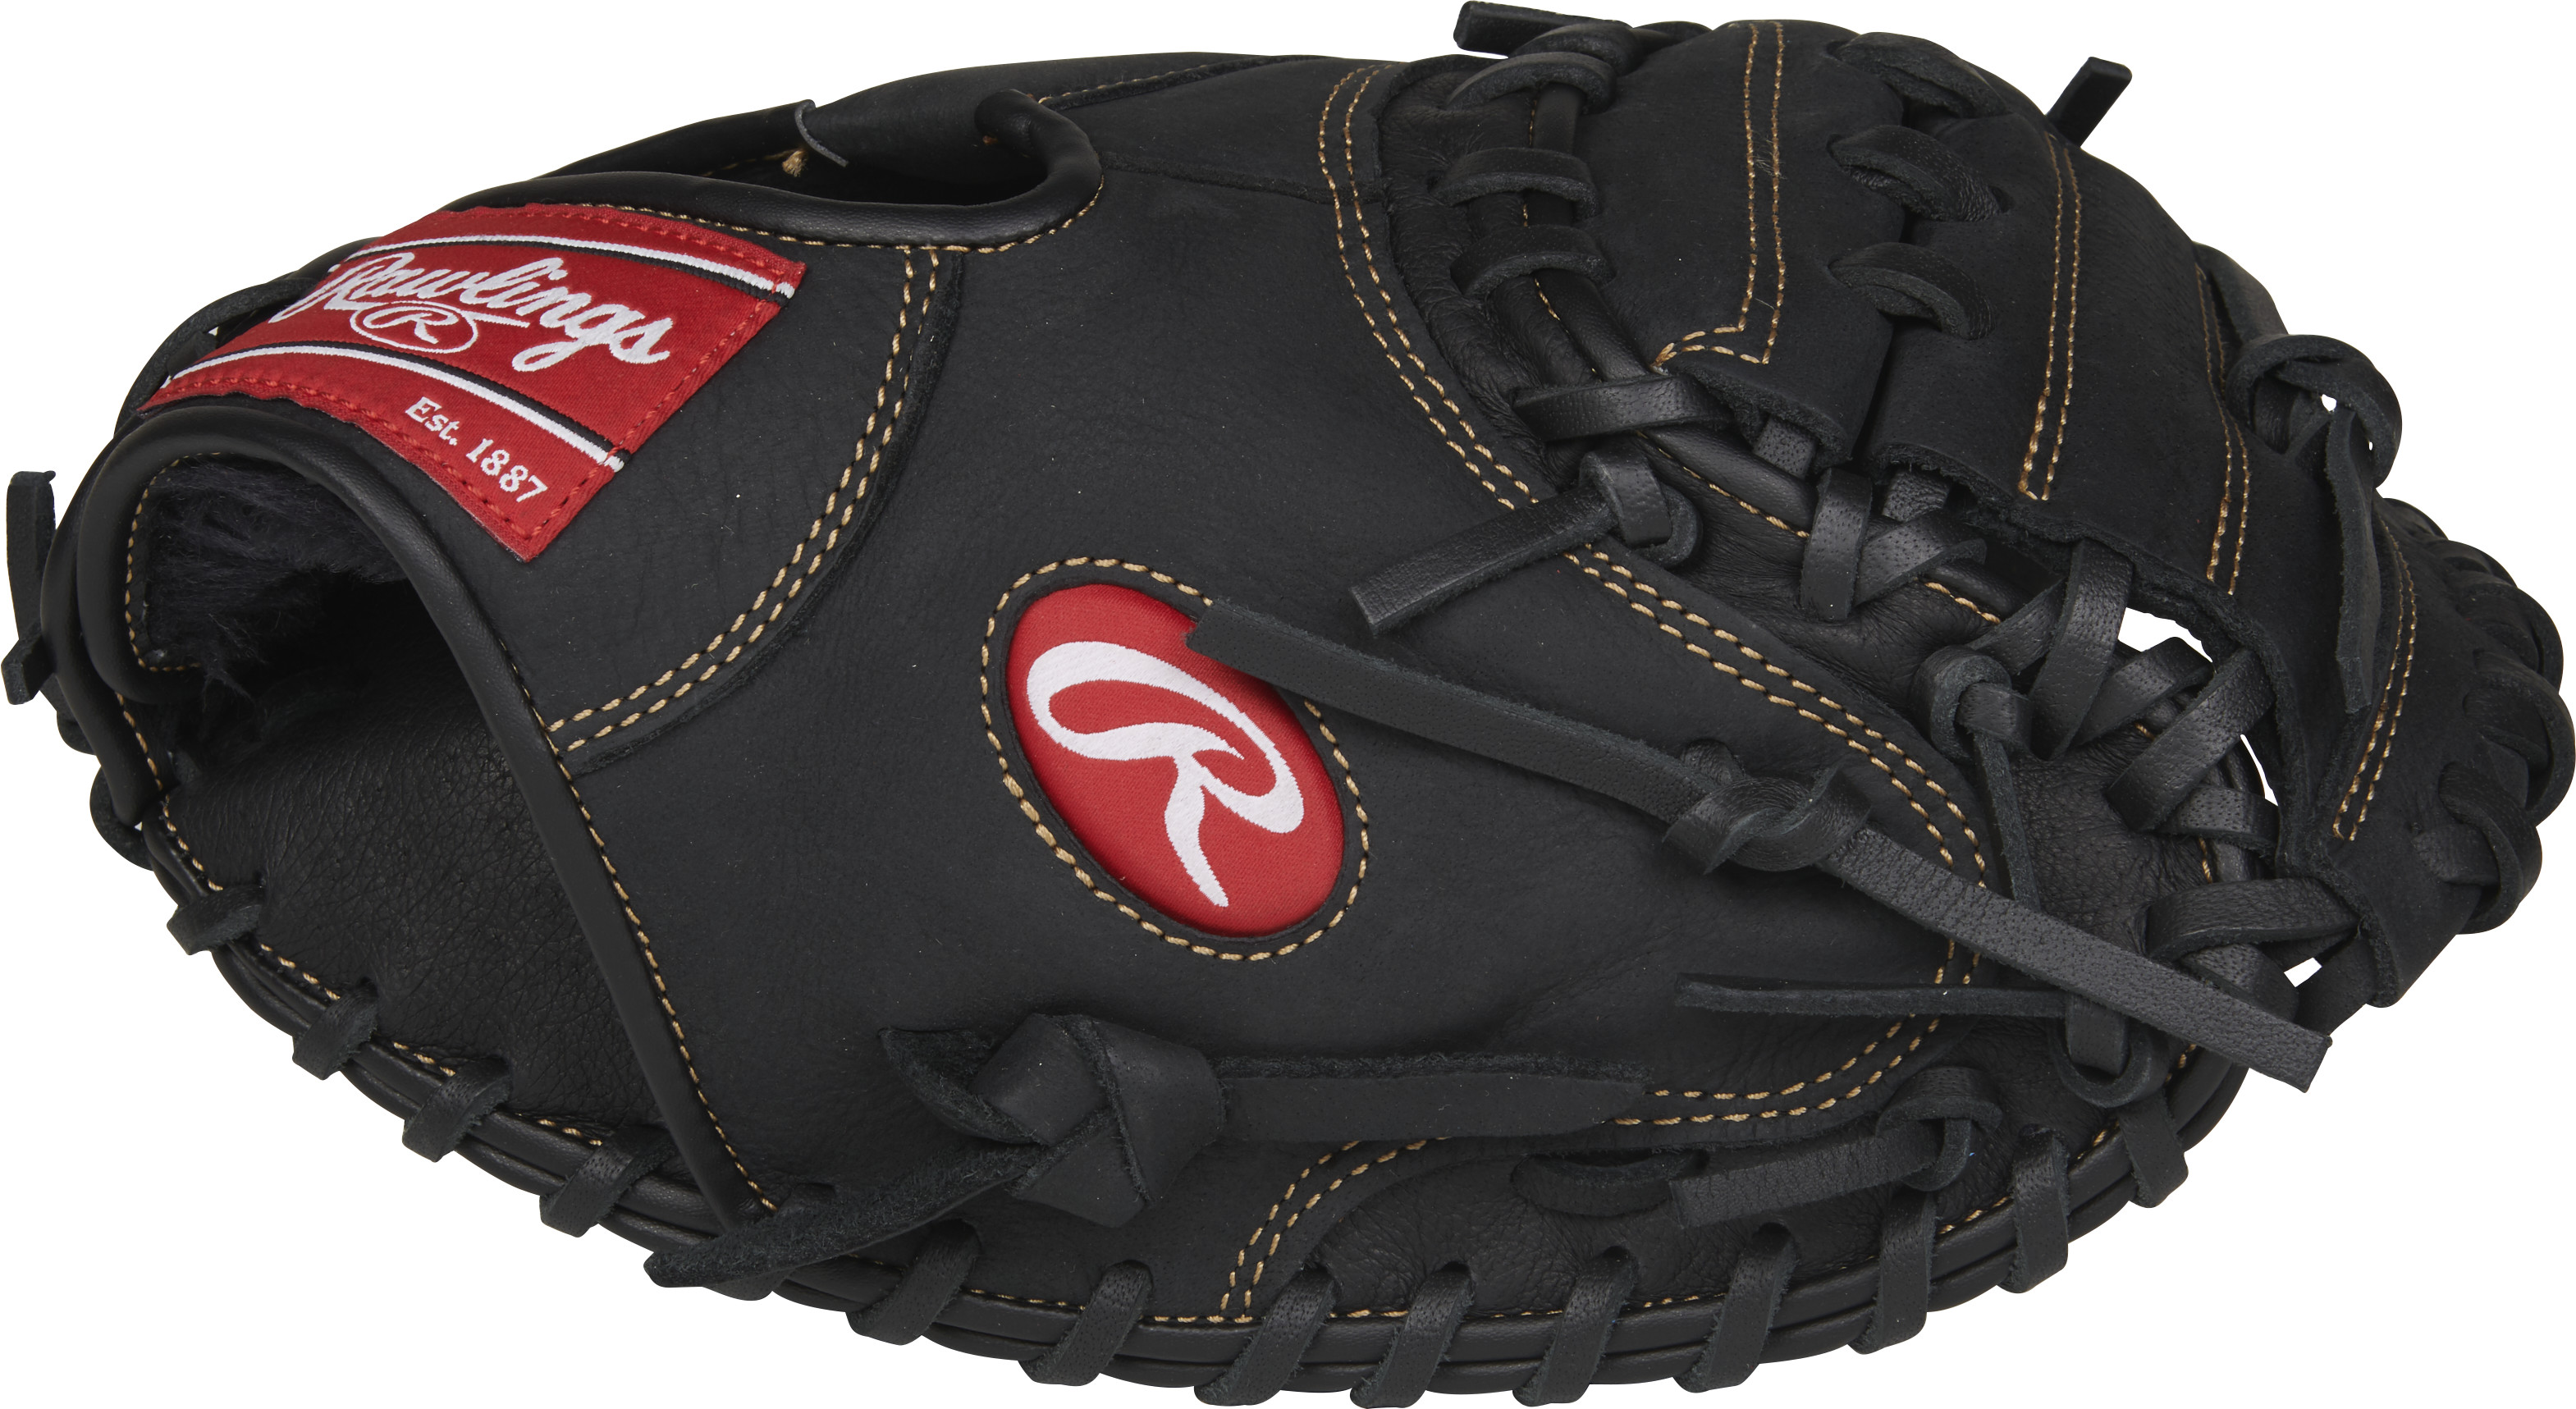 http://www.bestbatdeals.com/images/gloves/rawlings/RCM325B-3.jpg